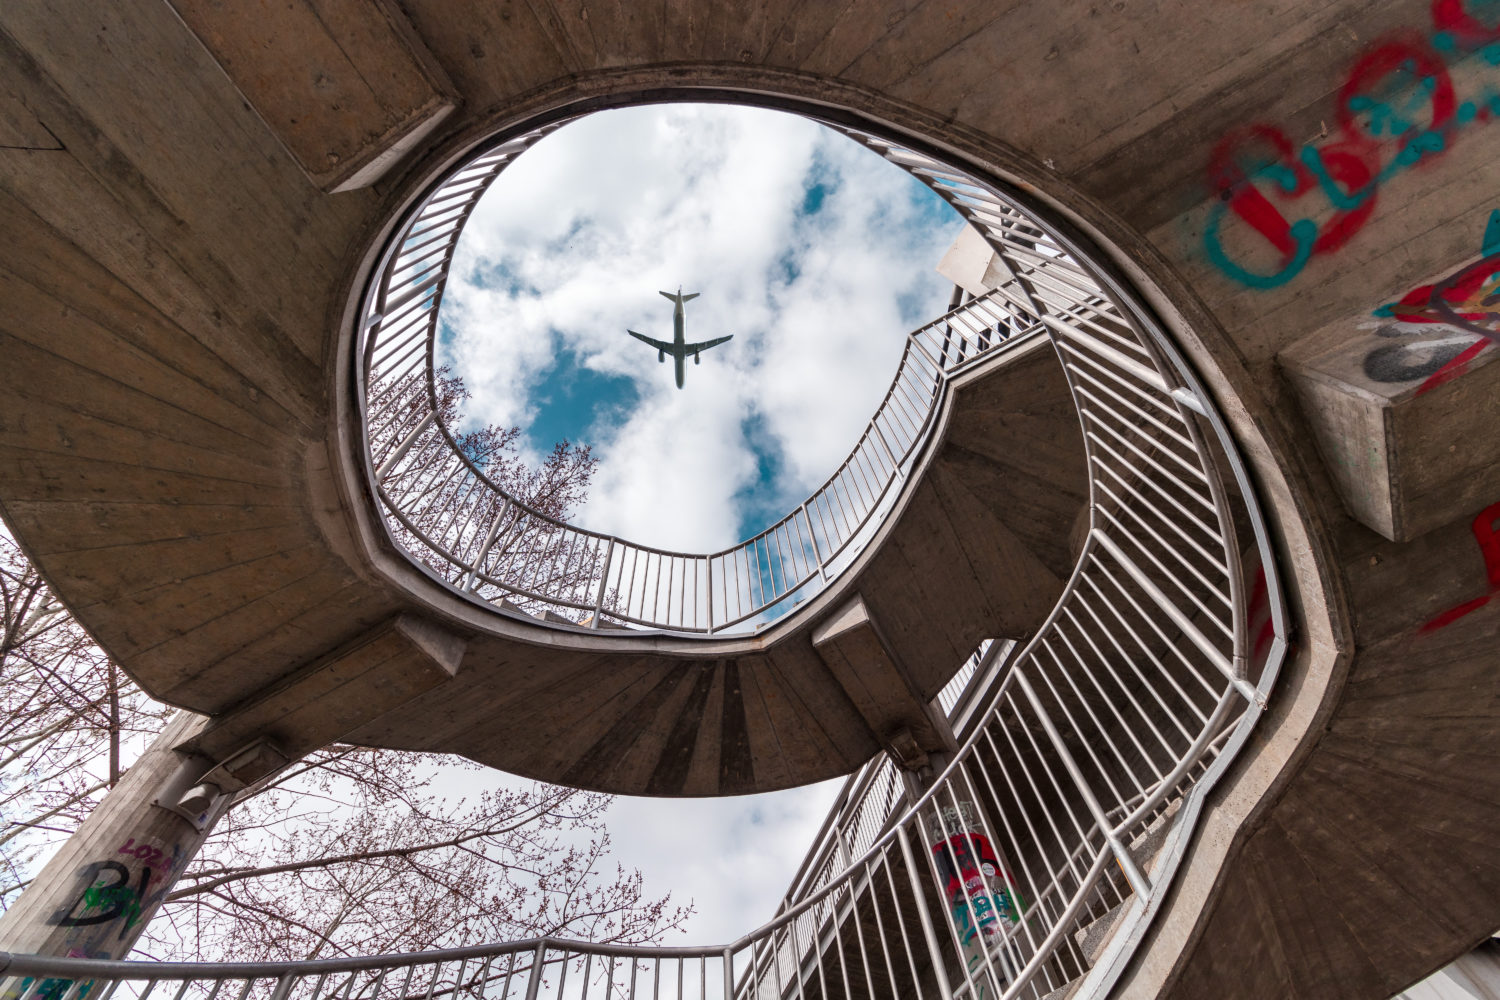 Plane going from Budapest to Vienna flying over a spiral staircase